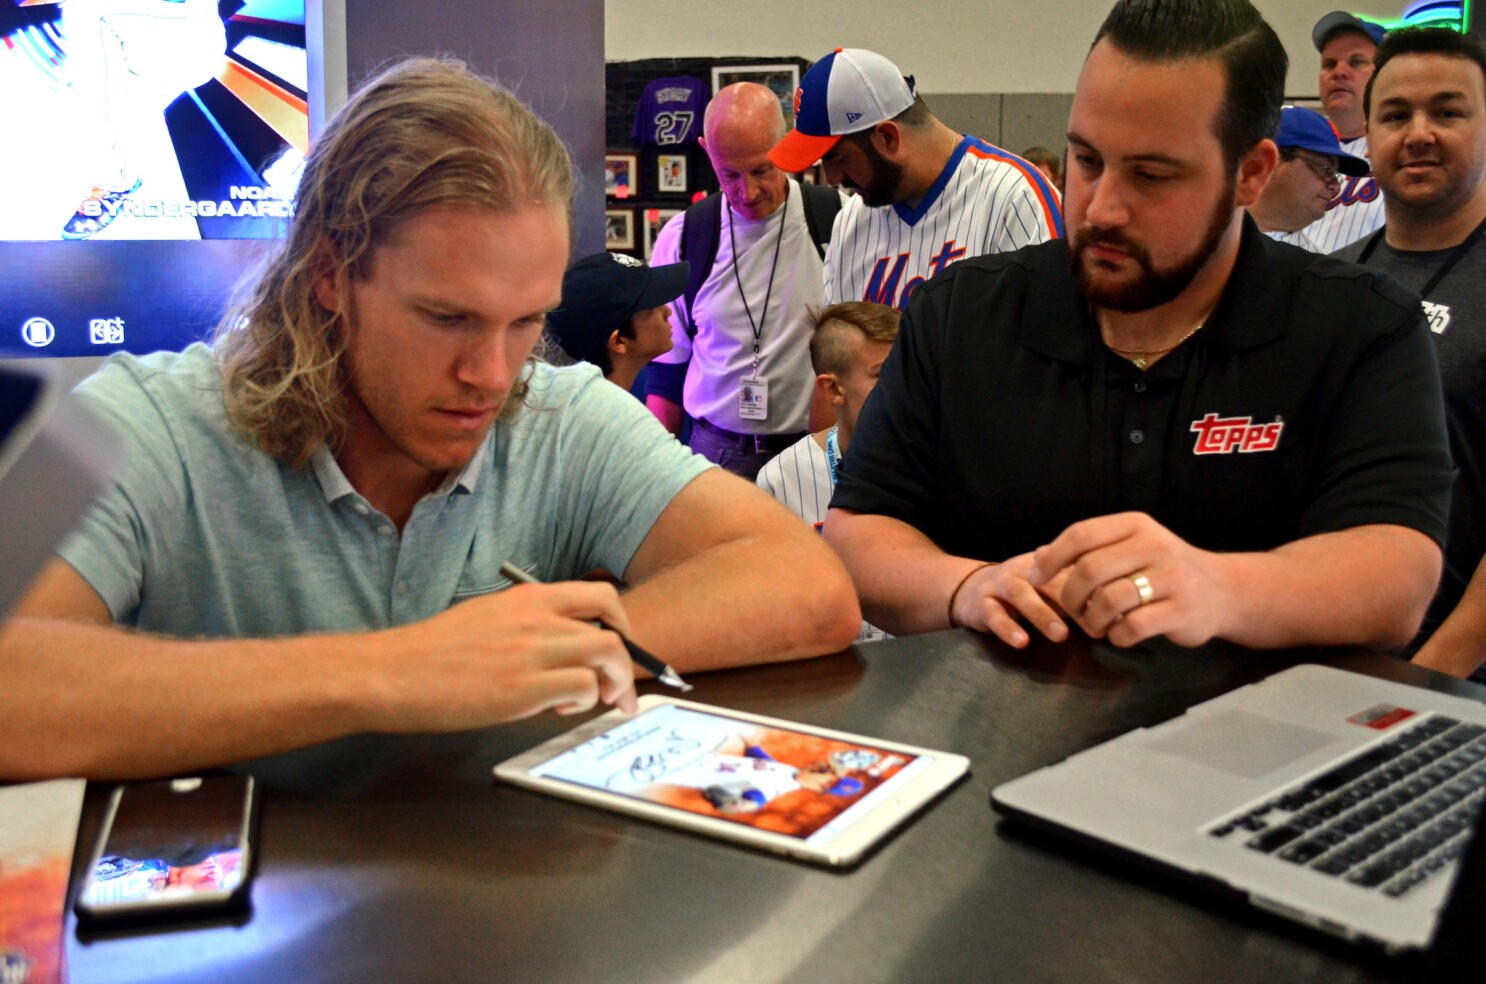 Even The Baseball Card Industry Sees Its Future In The App